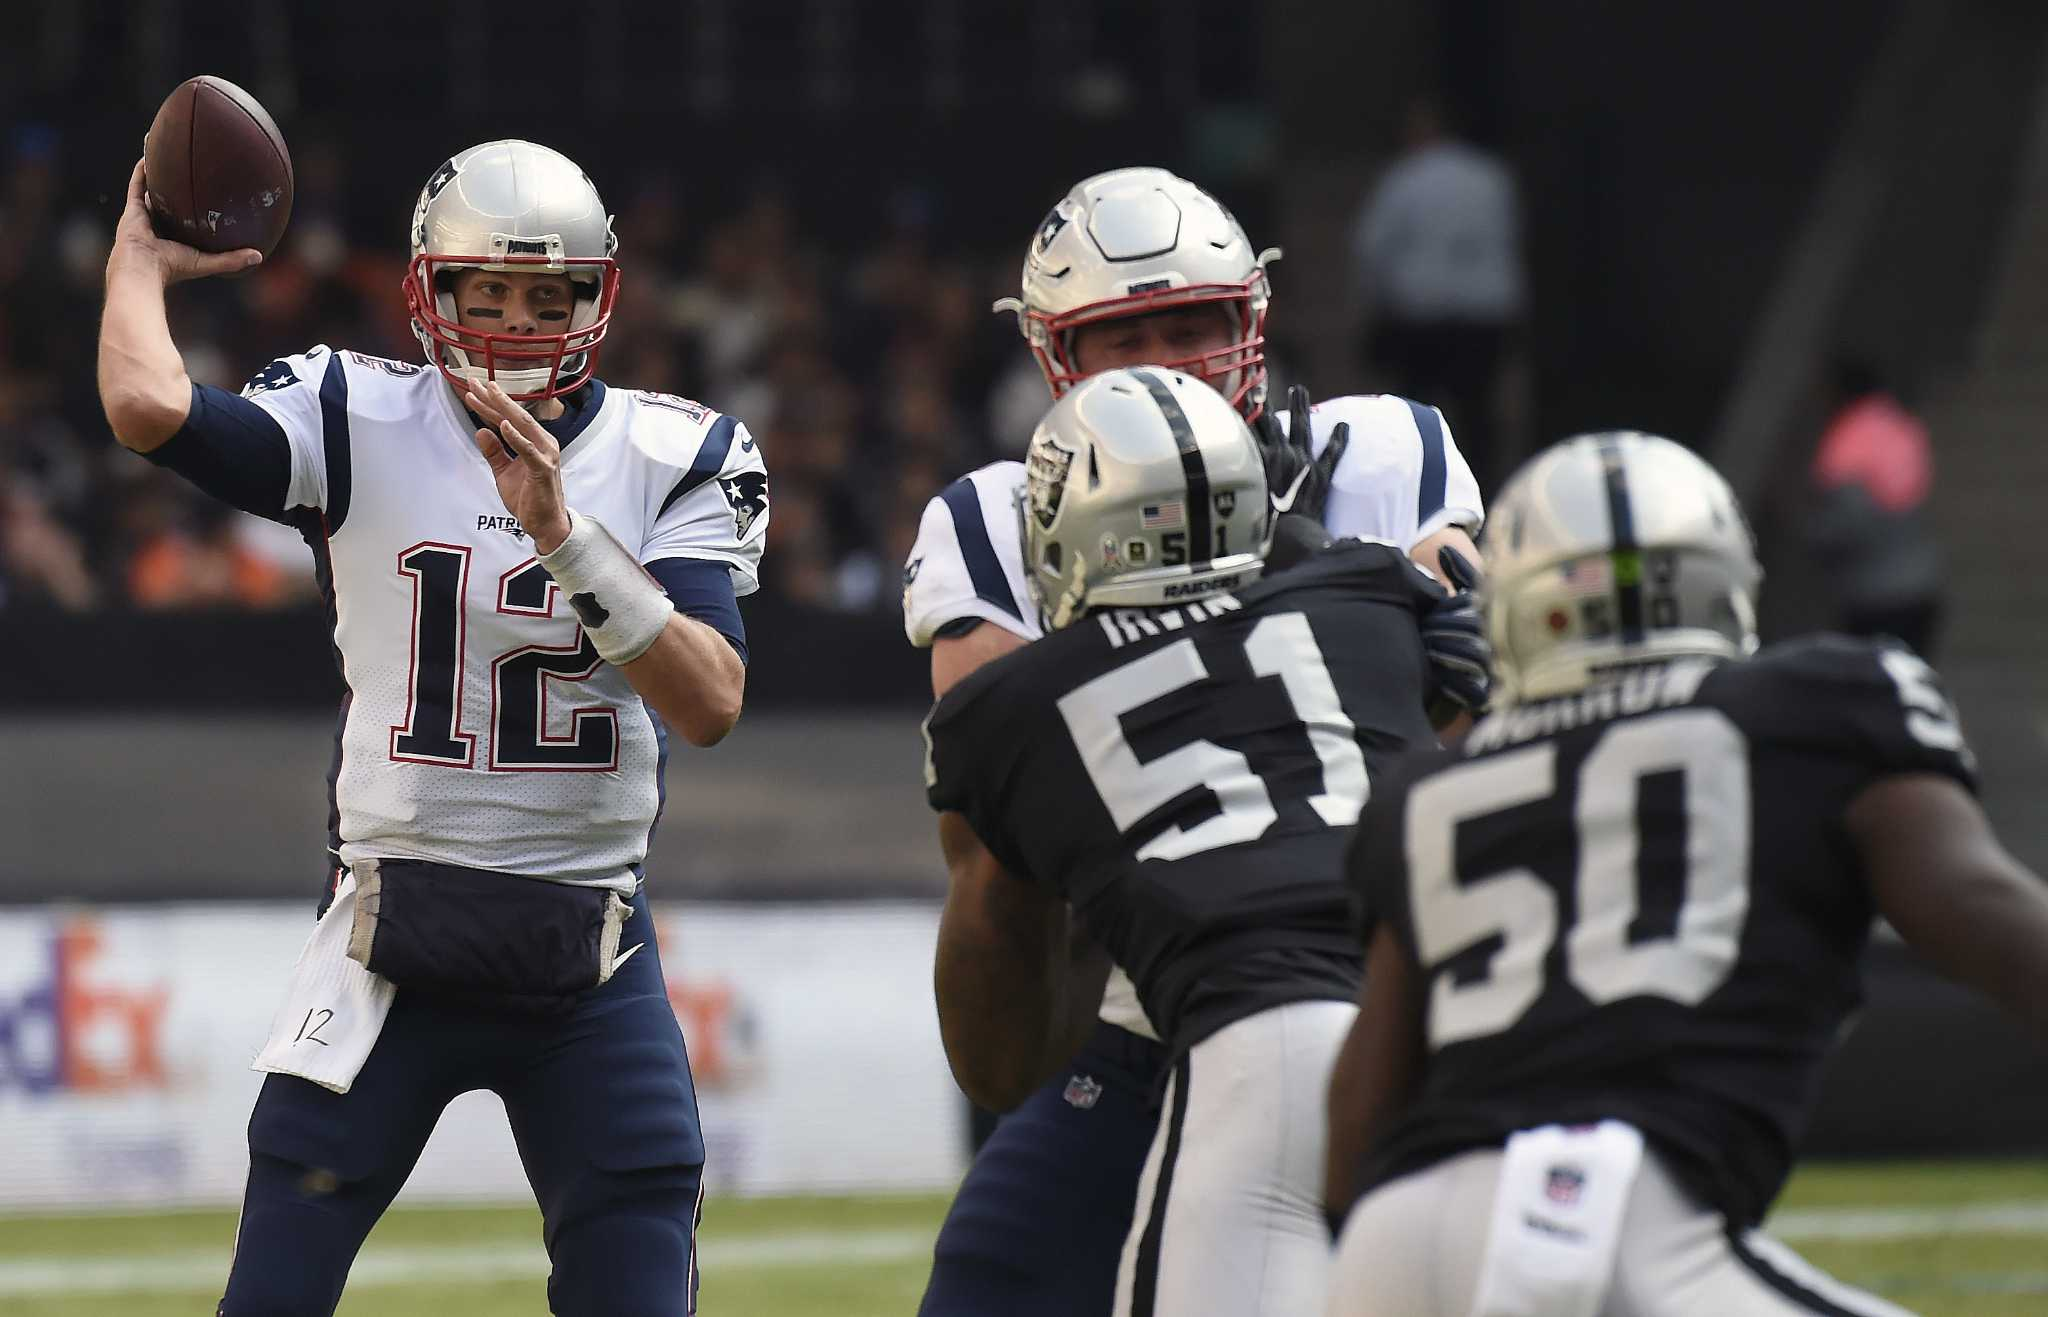 tom brady spends time with throwing coach during playoff - HD1600×1200